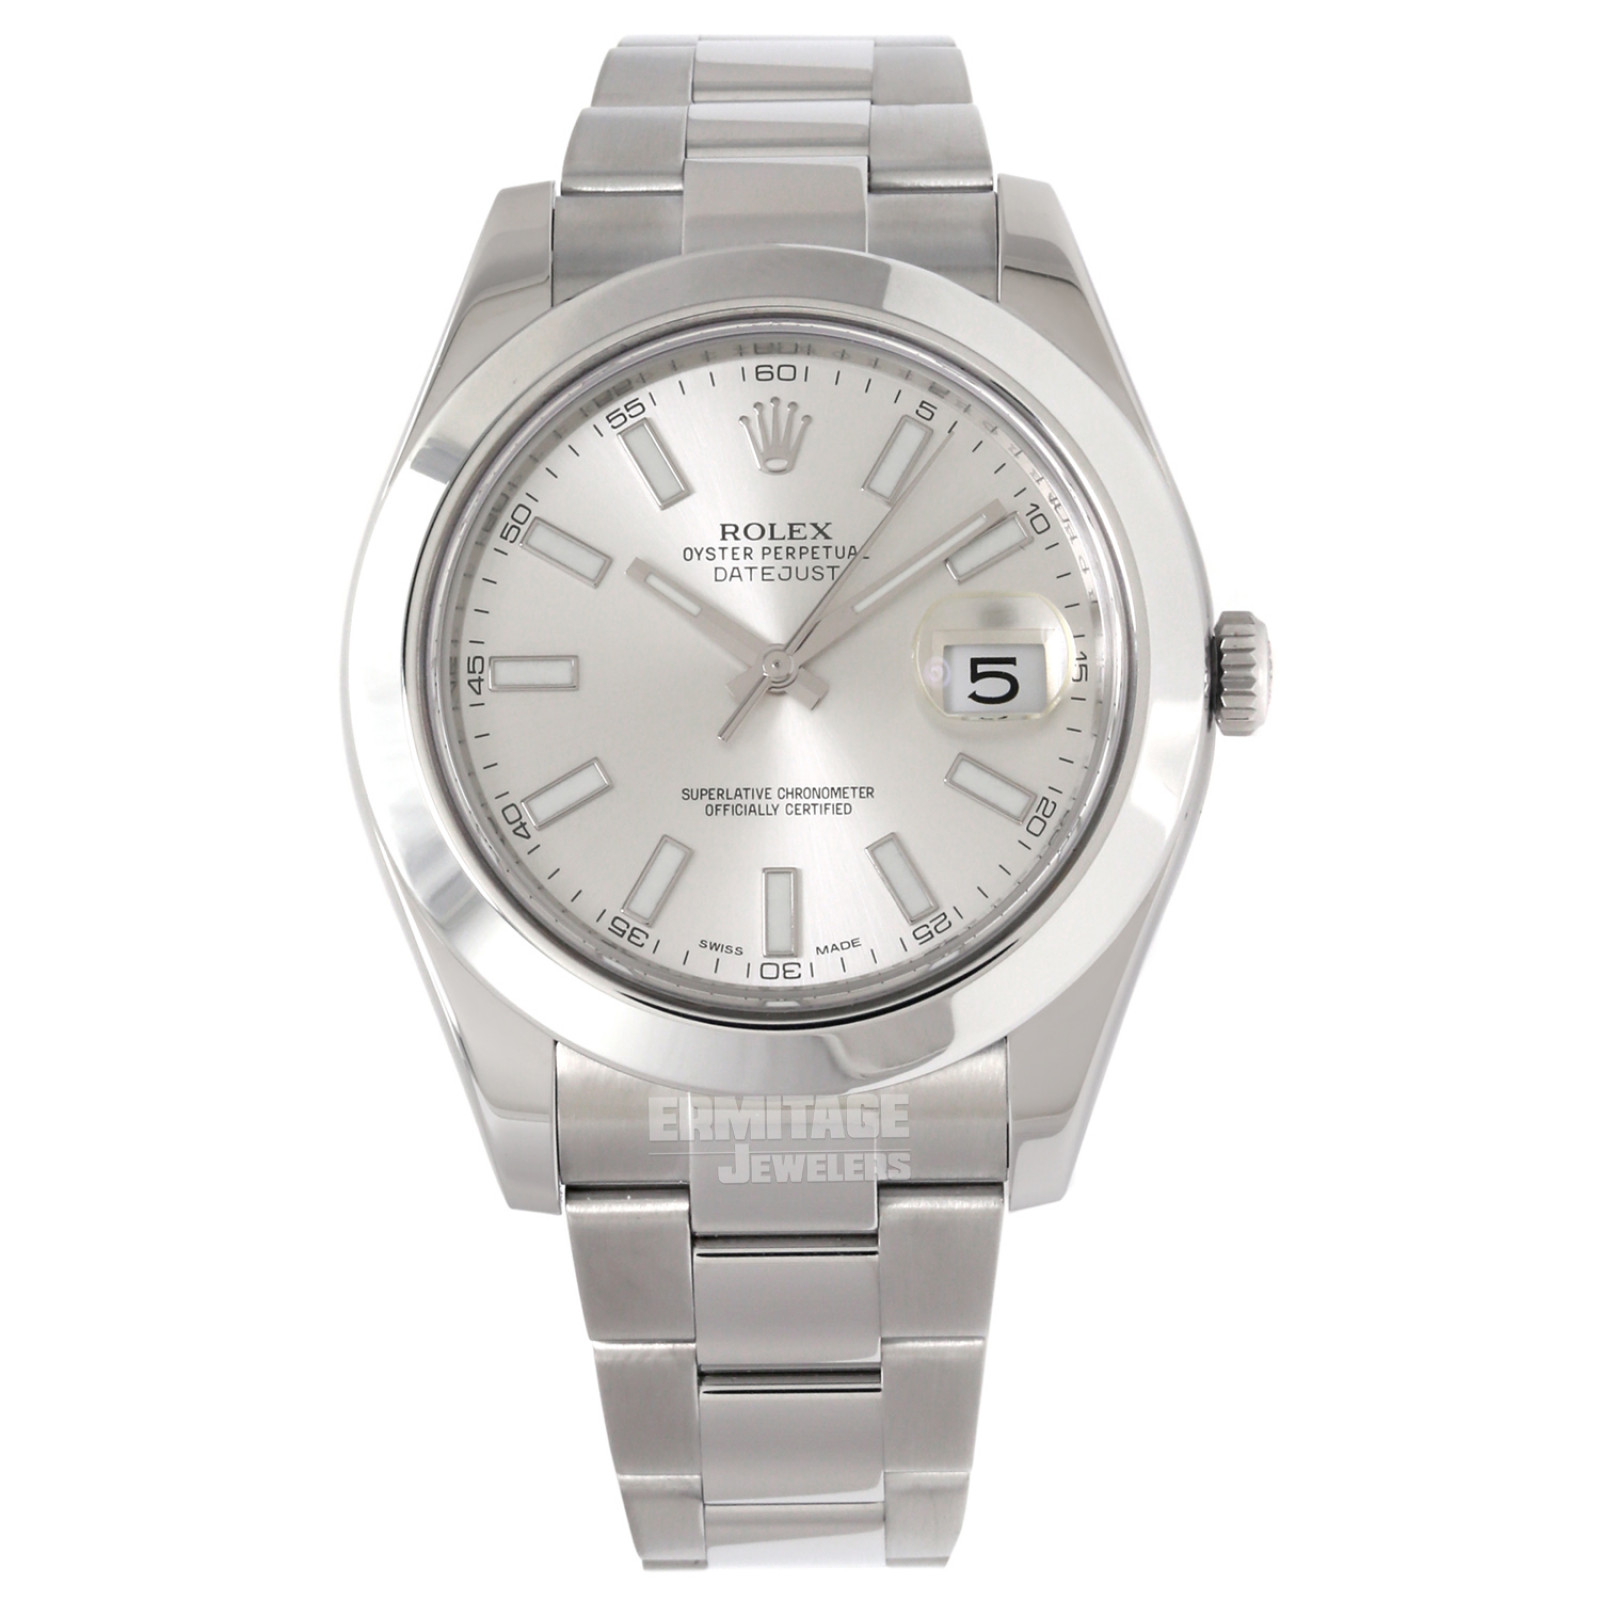 Rolex Datejust 116300 with Steel Dial